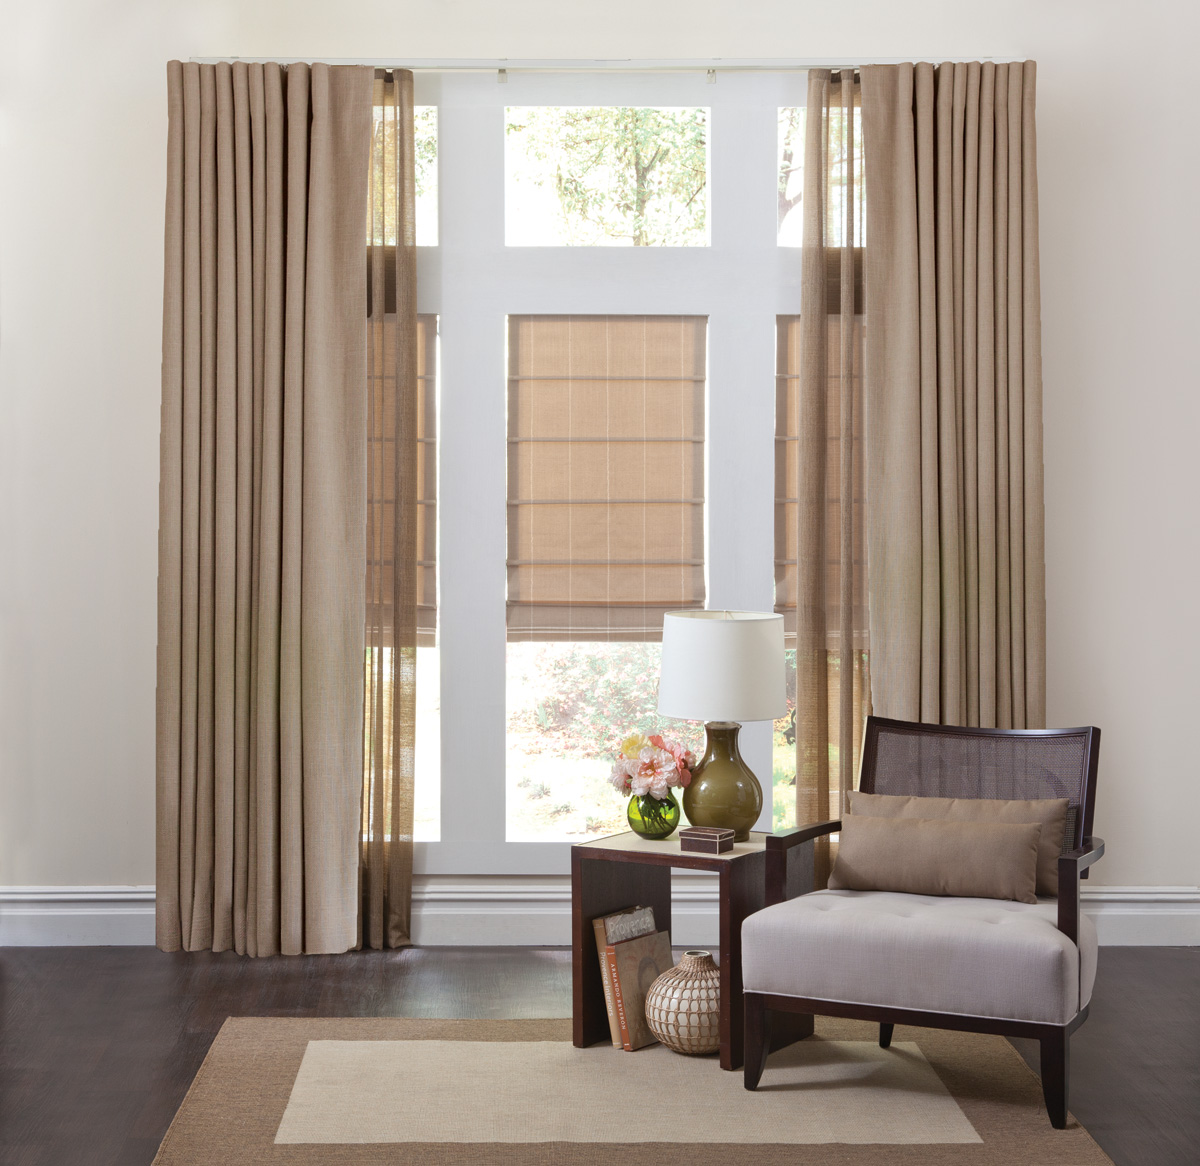 Affordableblinds Author At Affordable Blinds 1 In Window Treatments Page 13